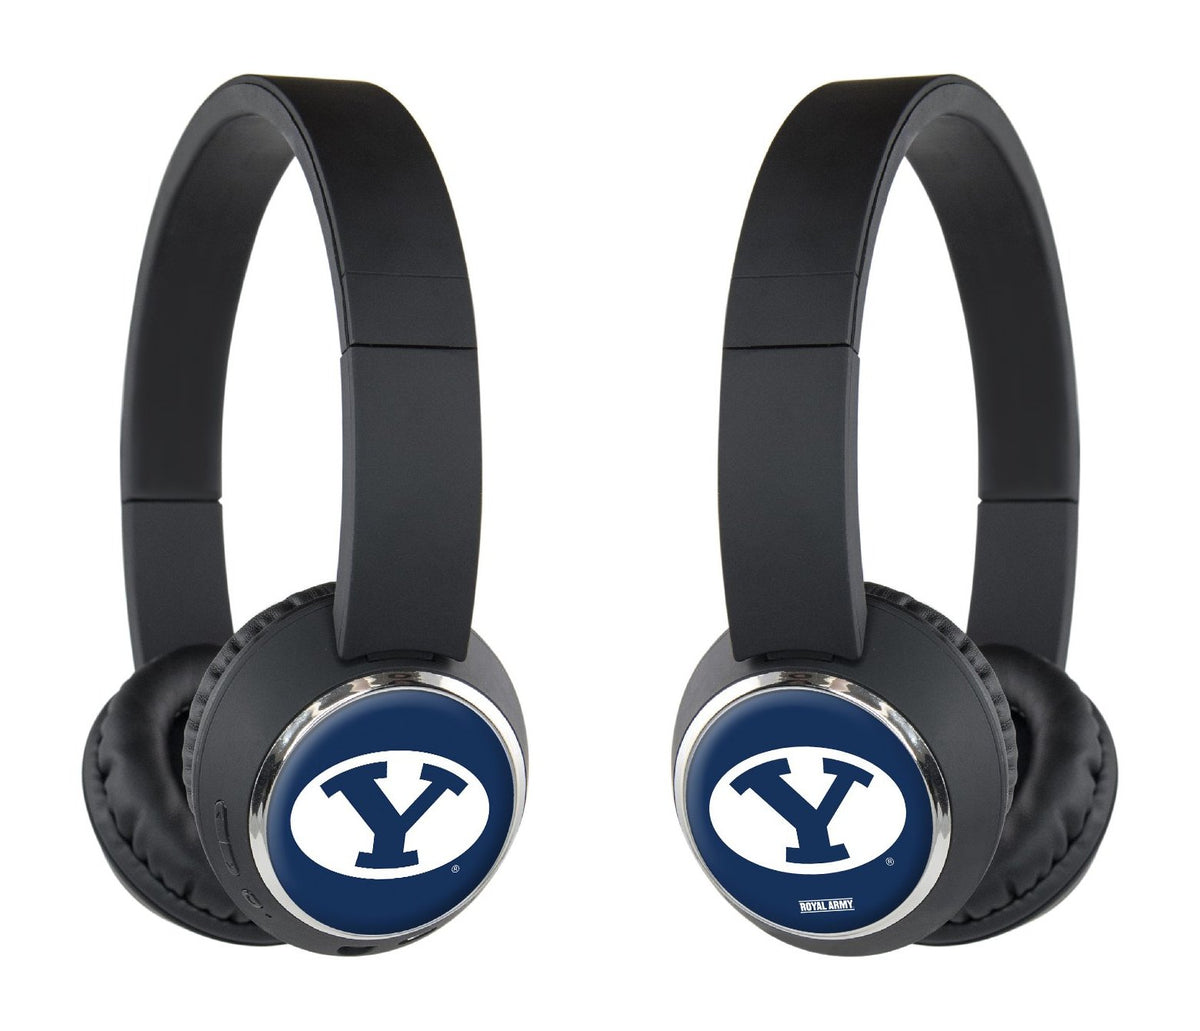 Royal Army Bluetooth Headphones with Custom BYU Designs